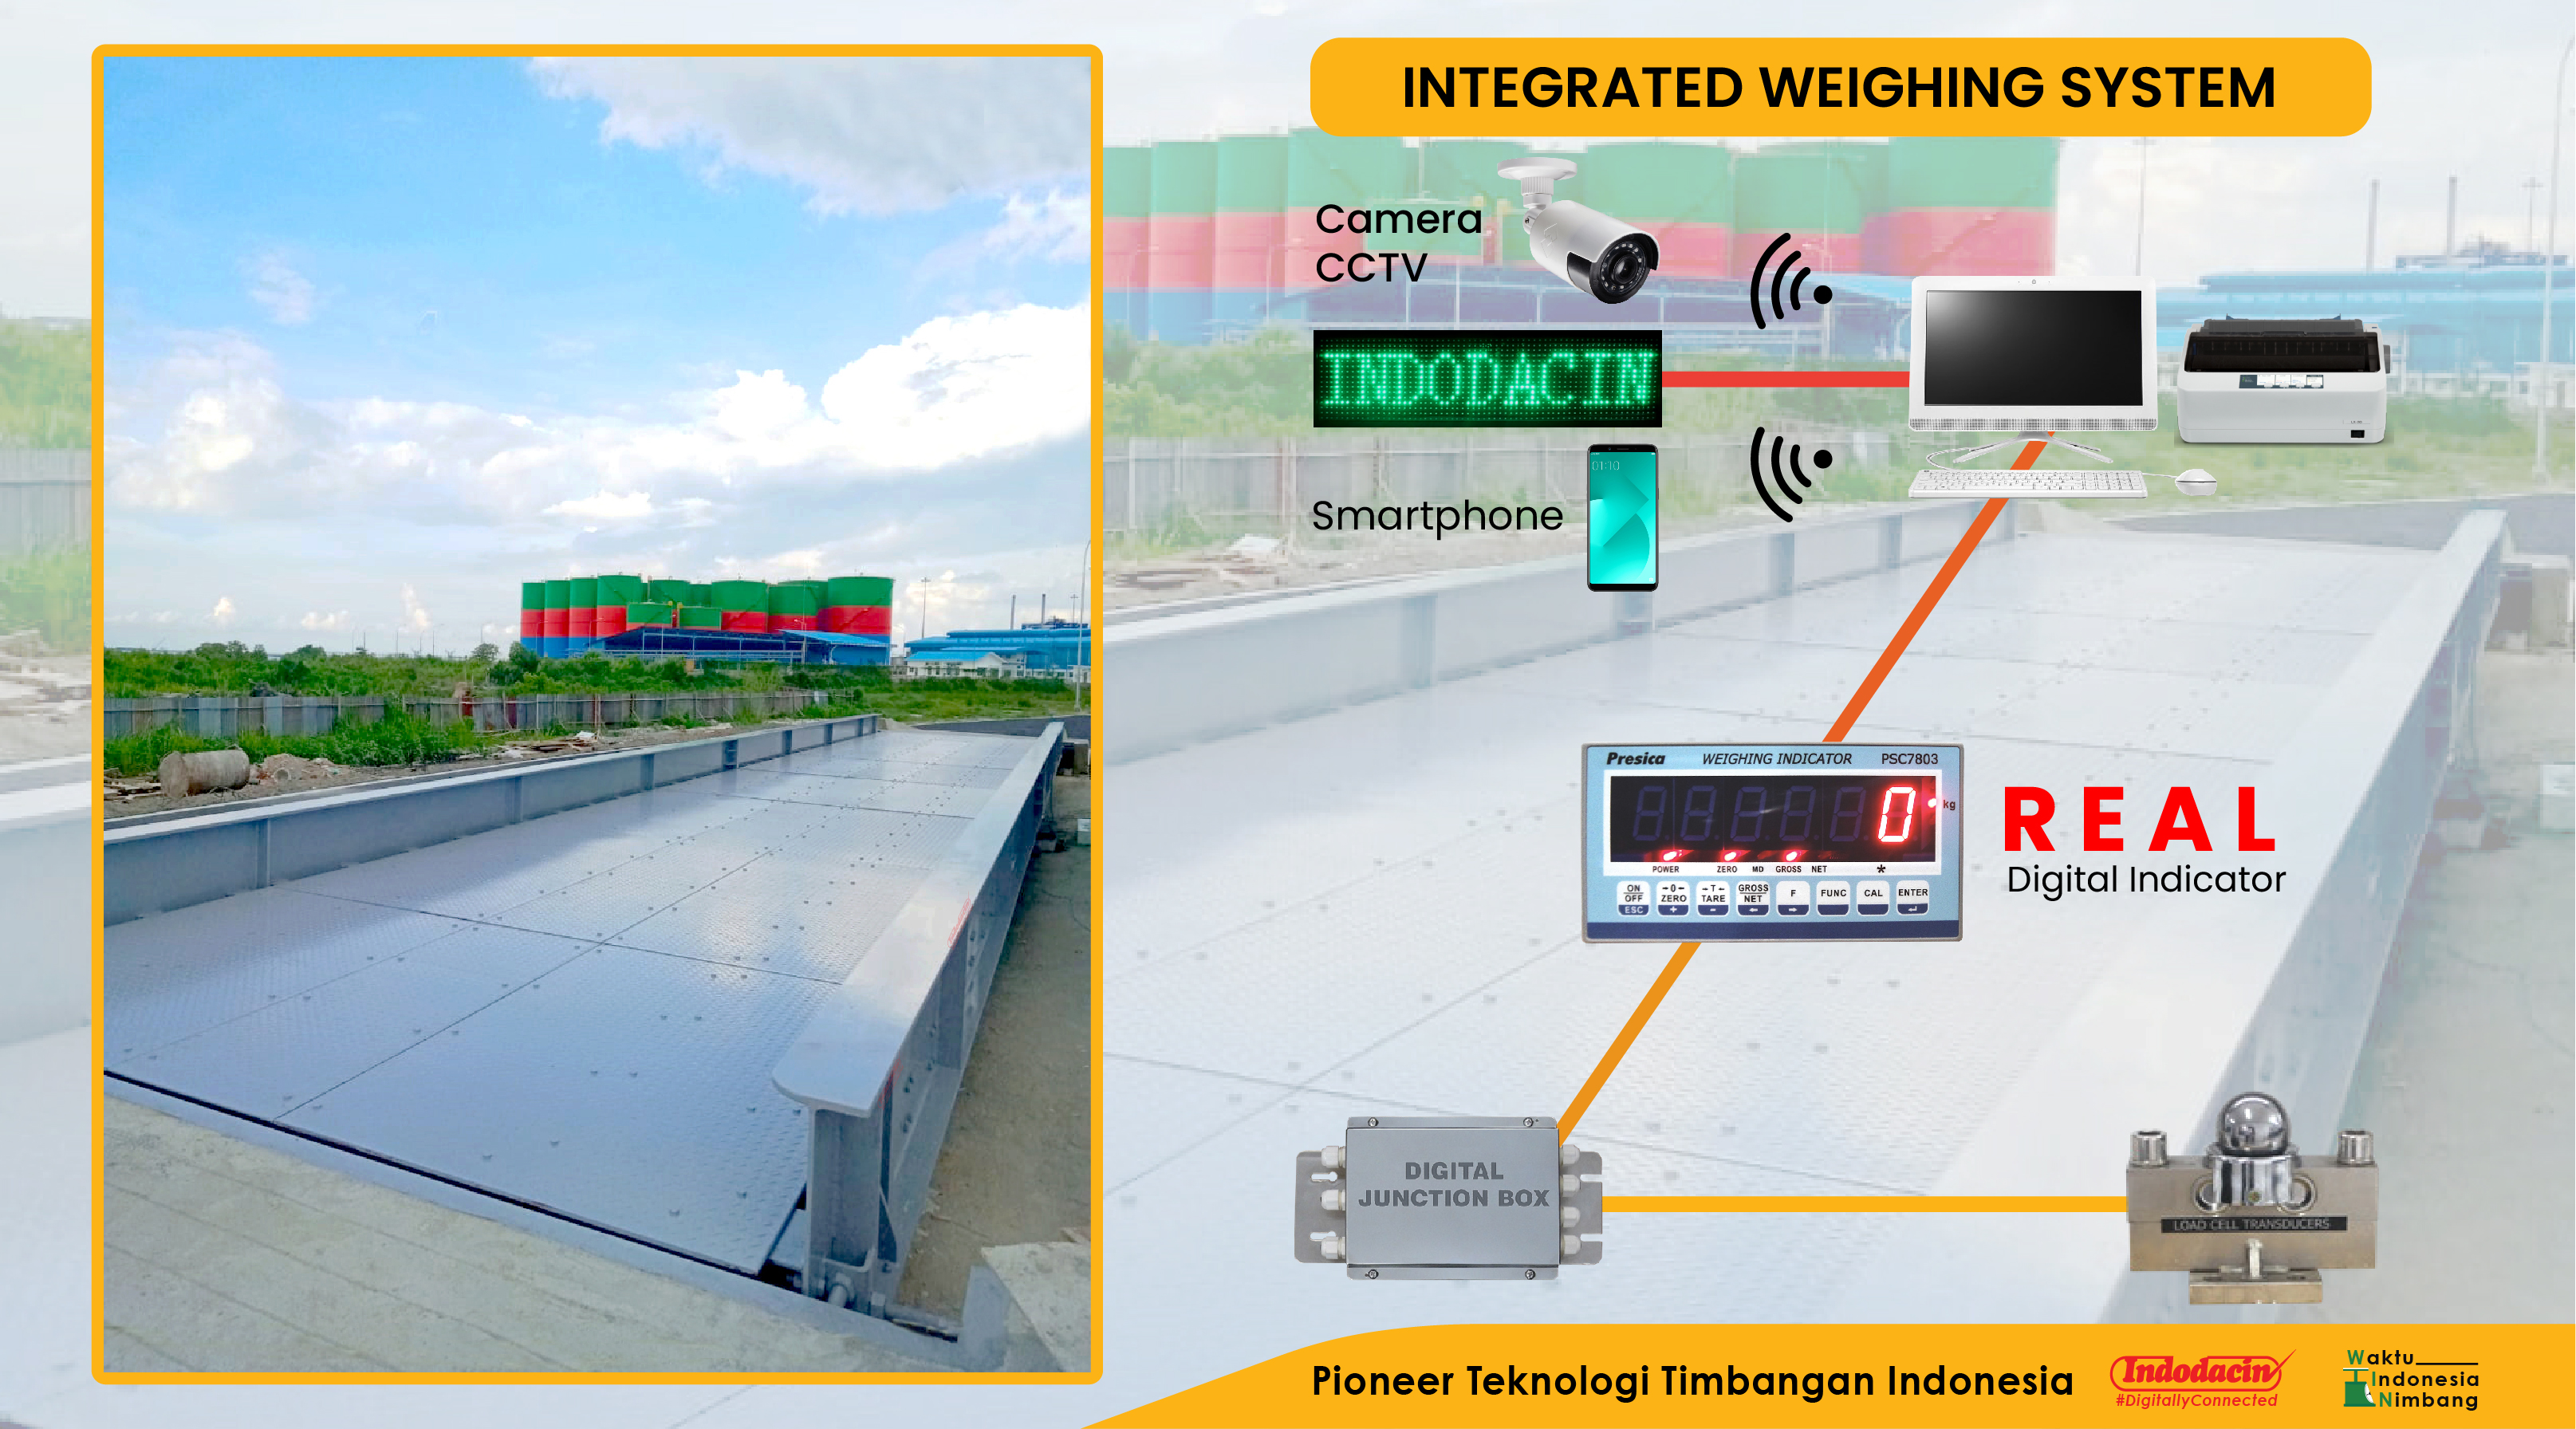 MAINBANNER (TOP) INTEGRATED WEIGHING SYSTEM